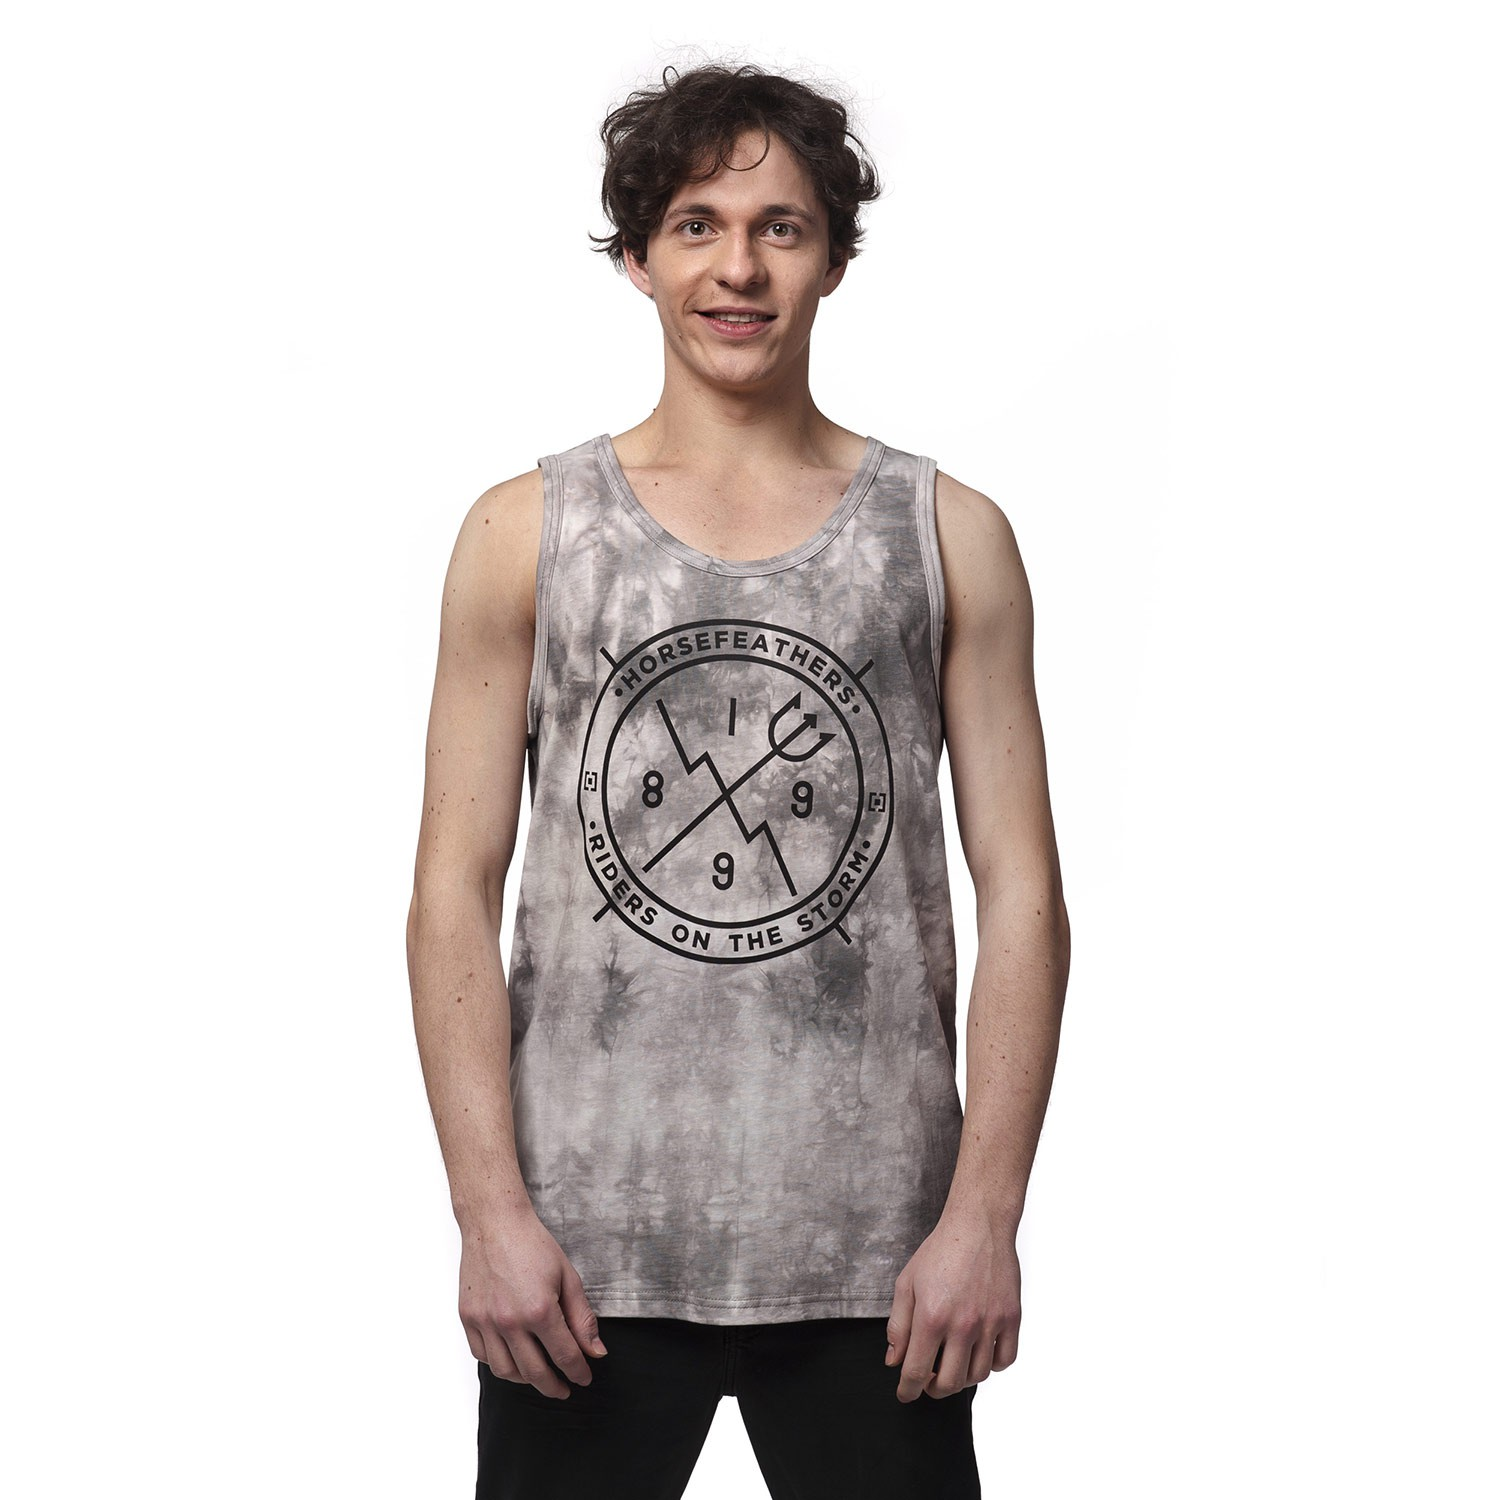 Tričko Horsefeathers Epic Tank Top grey batik